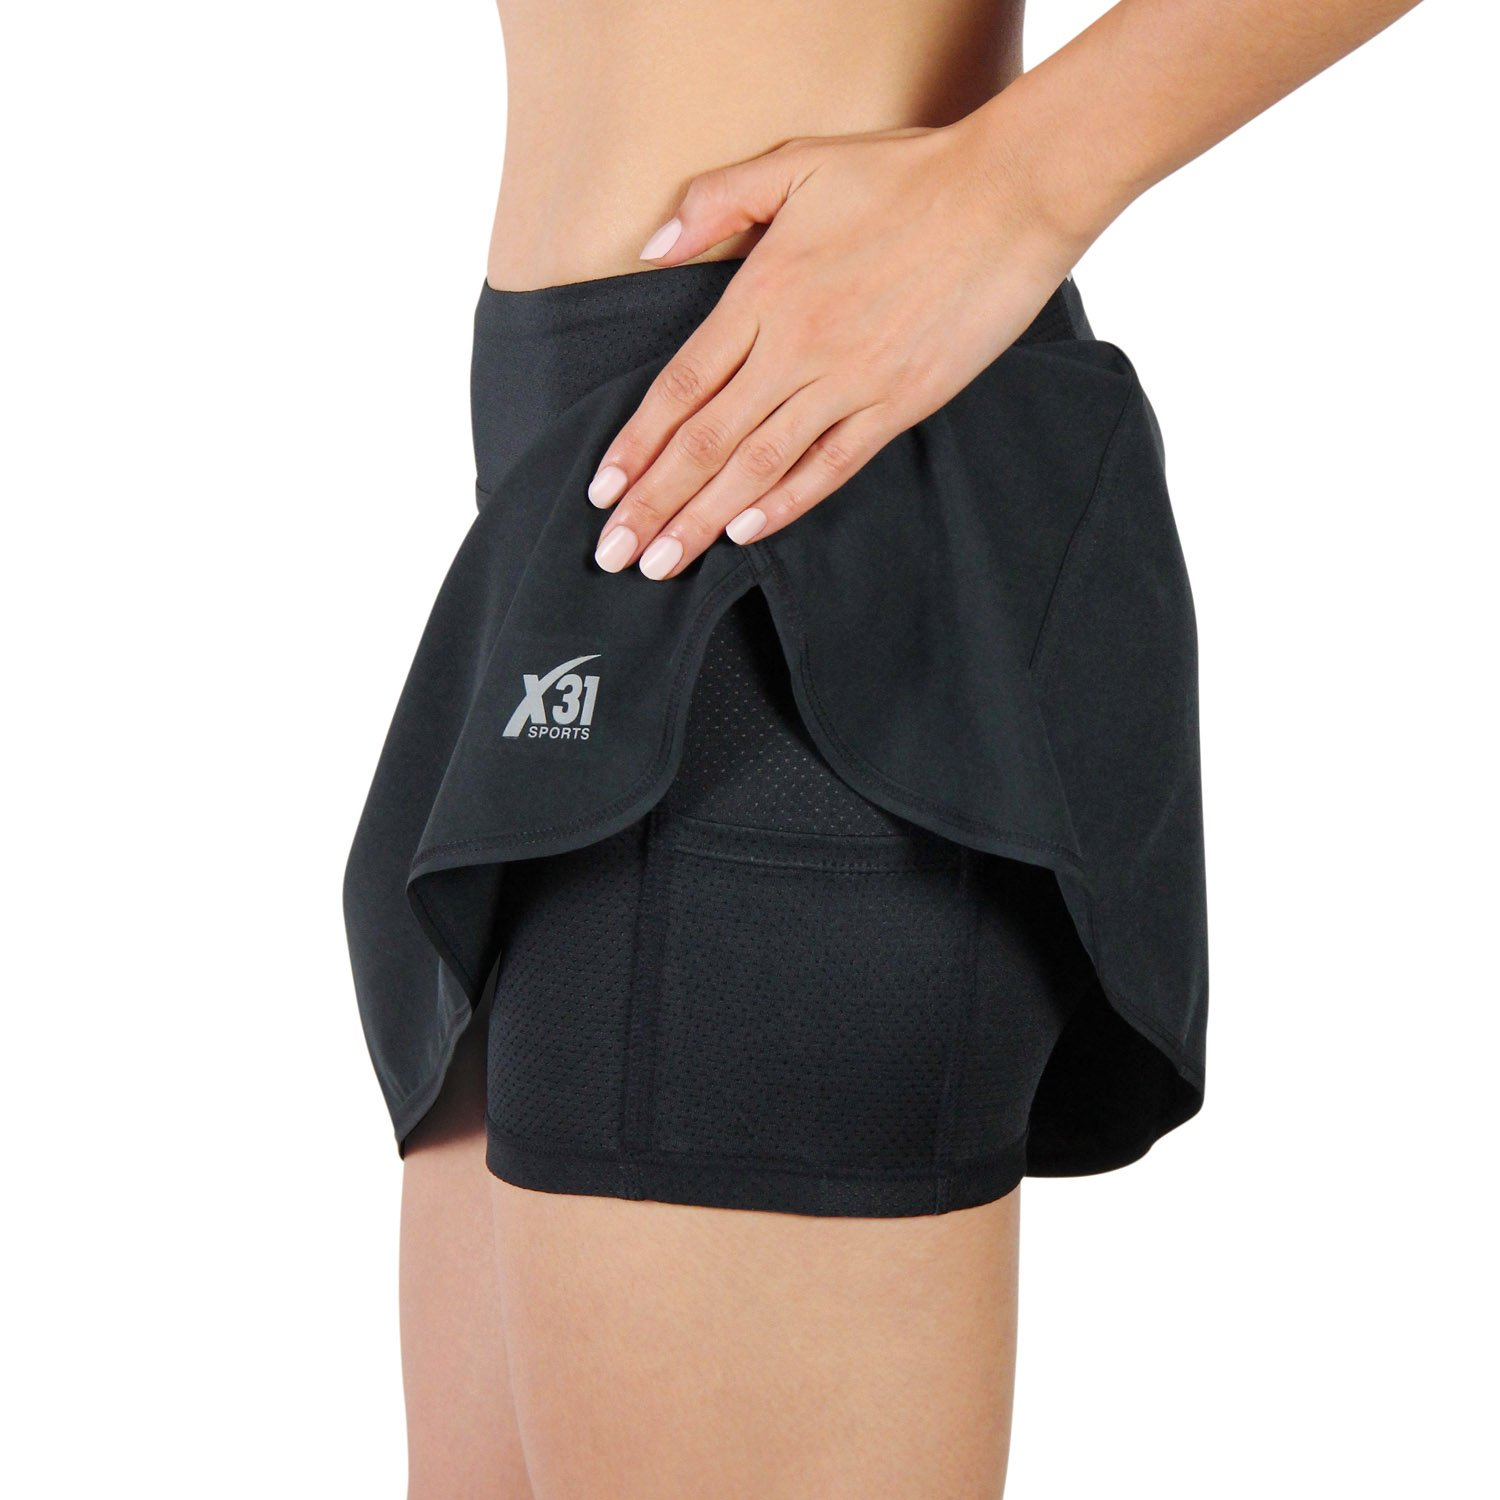 X31 Sports Running Skirt Tennis Skort with Shorts and Pockets (Black, Small)